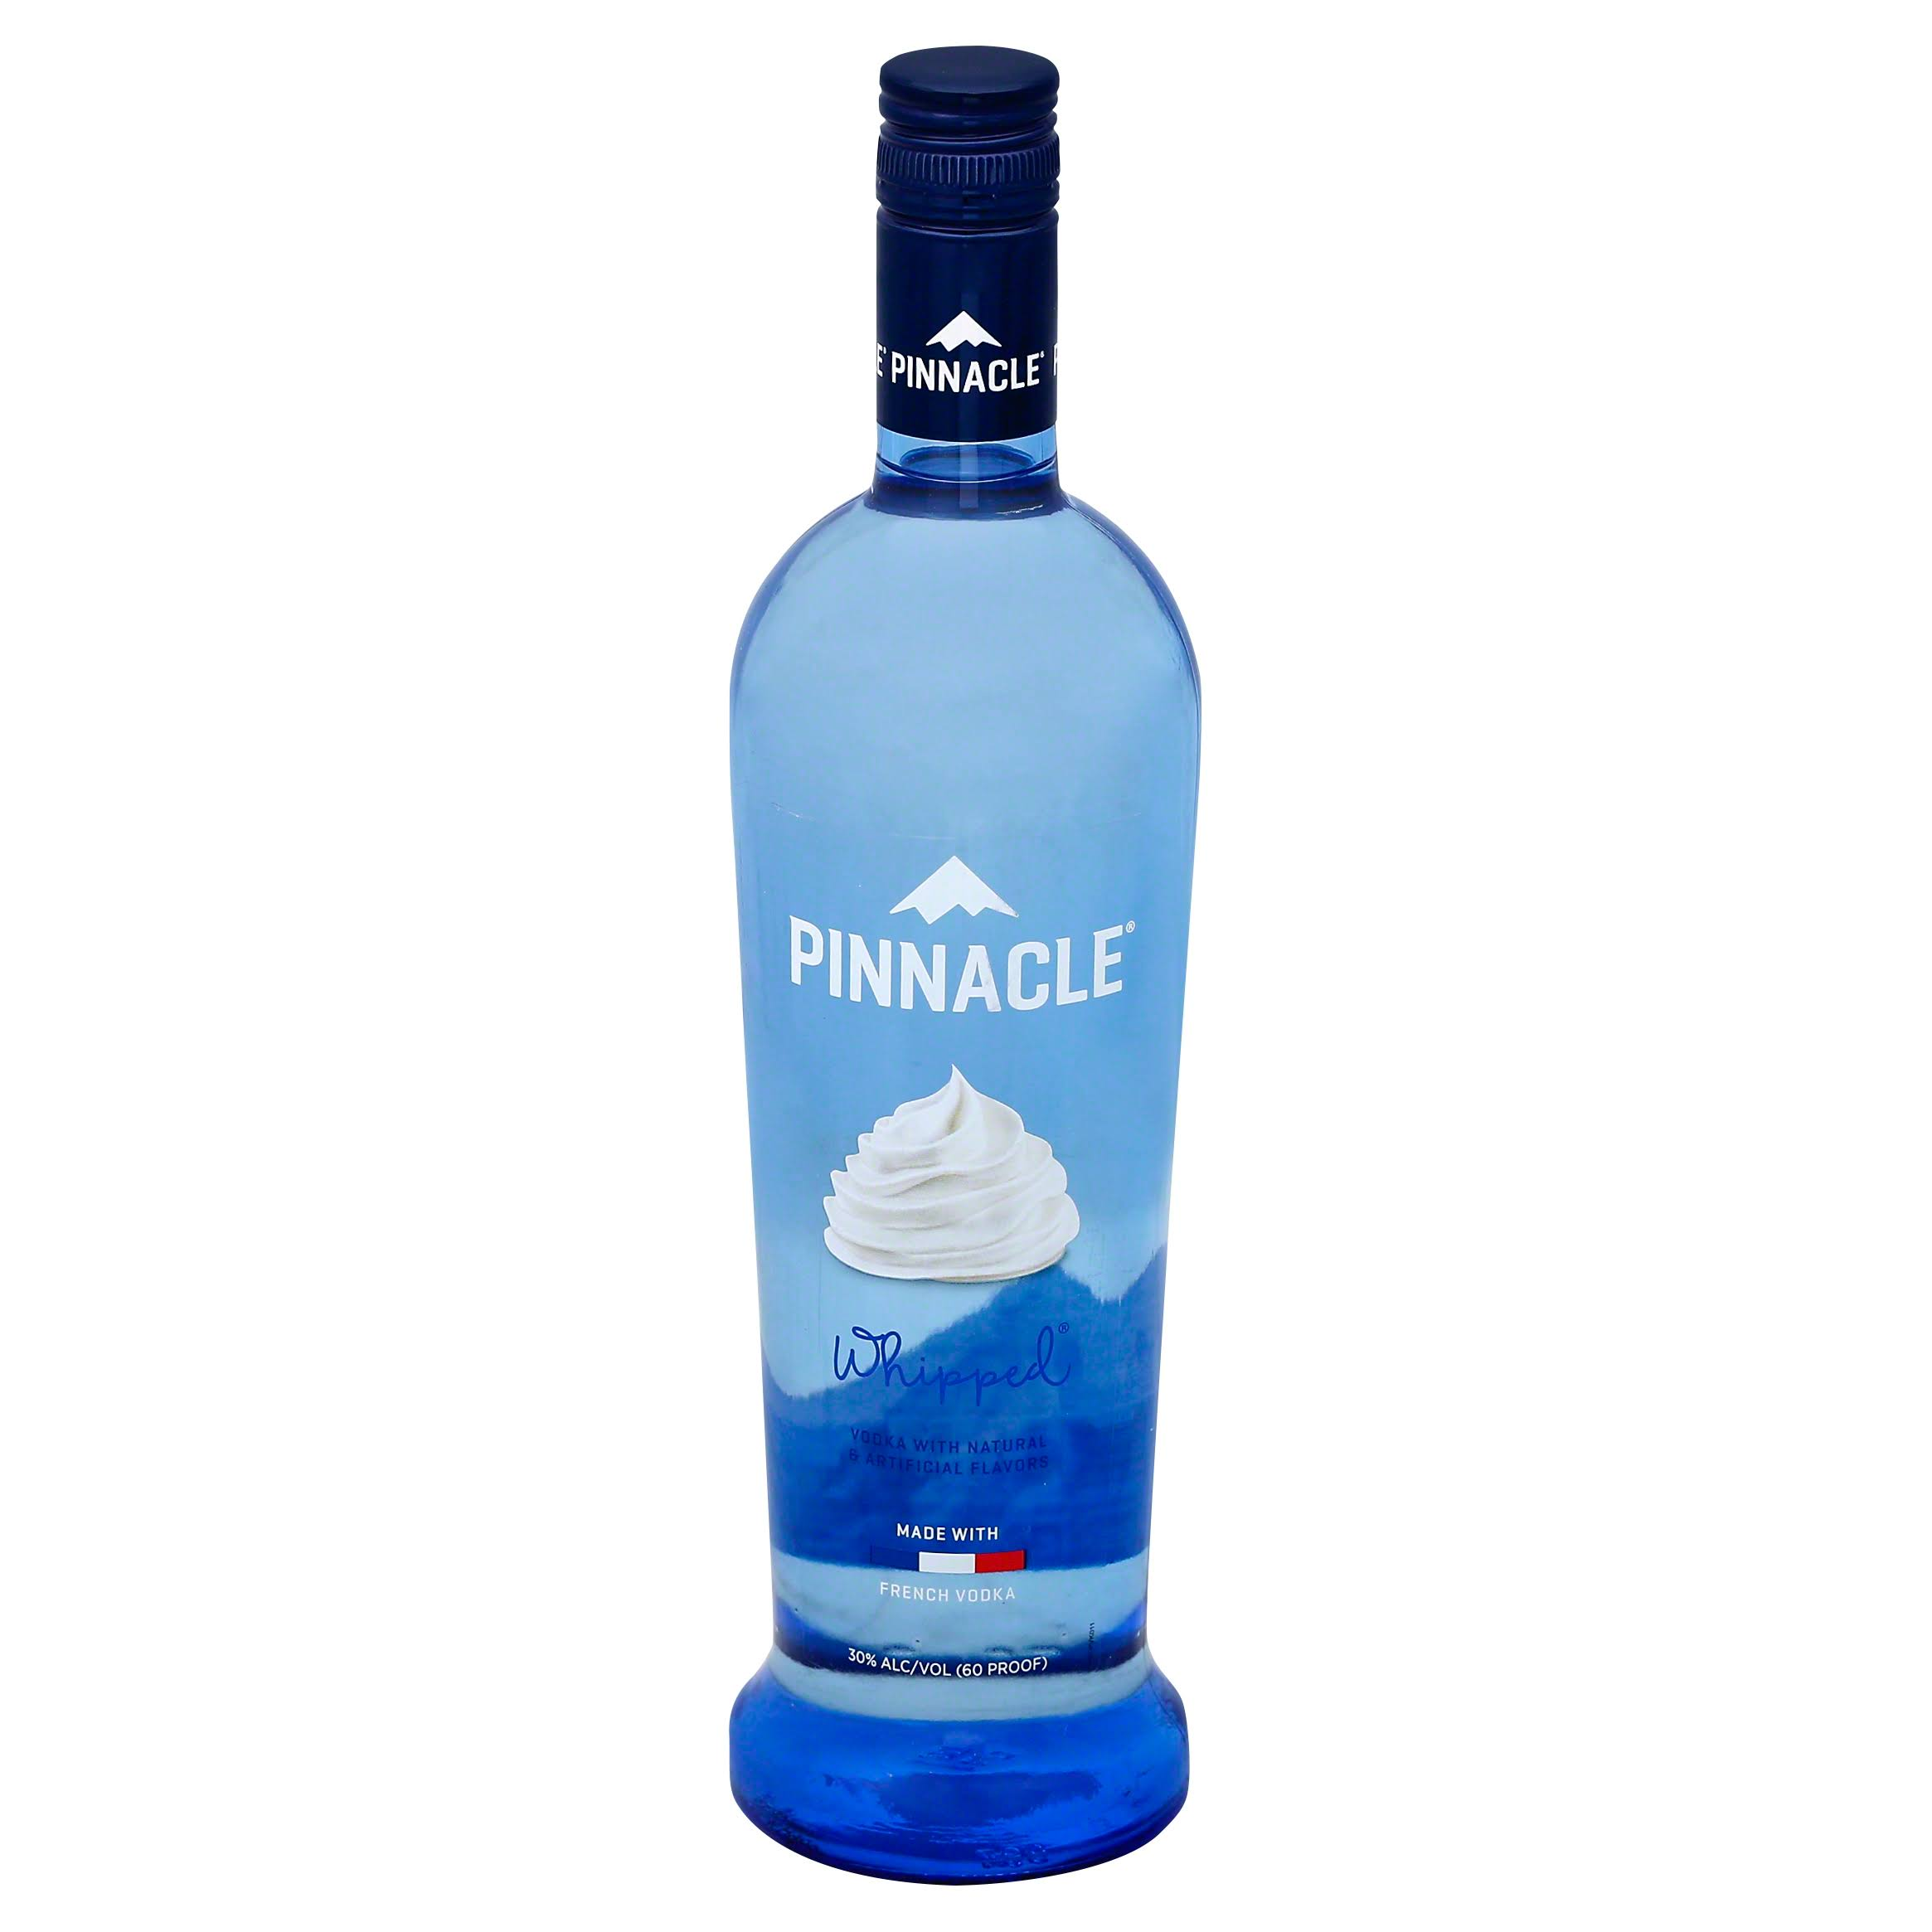 Pinnacle Vodka Whipped Cream - 750ml